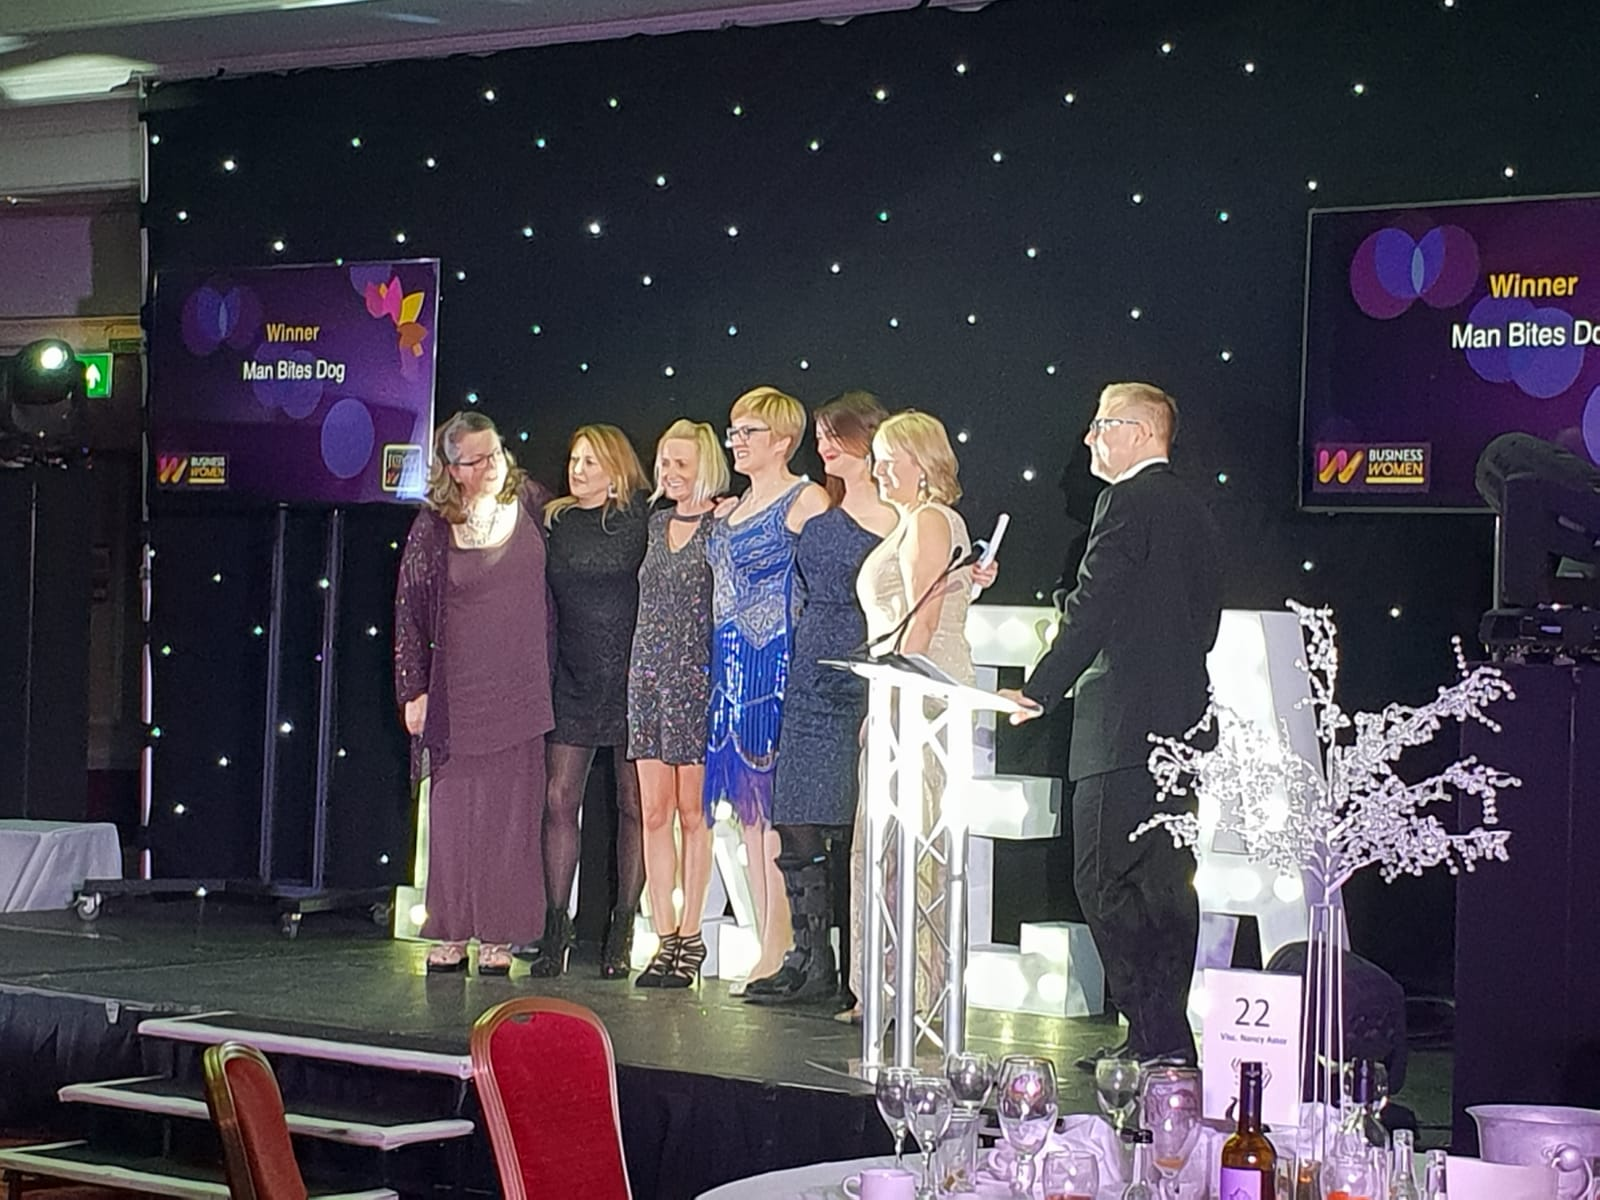 Man Bites Dog on stage after being voted Business of the Year at the Business Women Excellence Awards 2018 for Sussex.